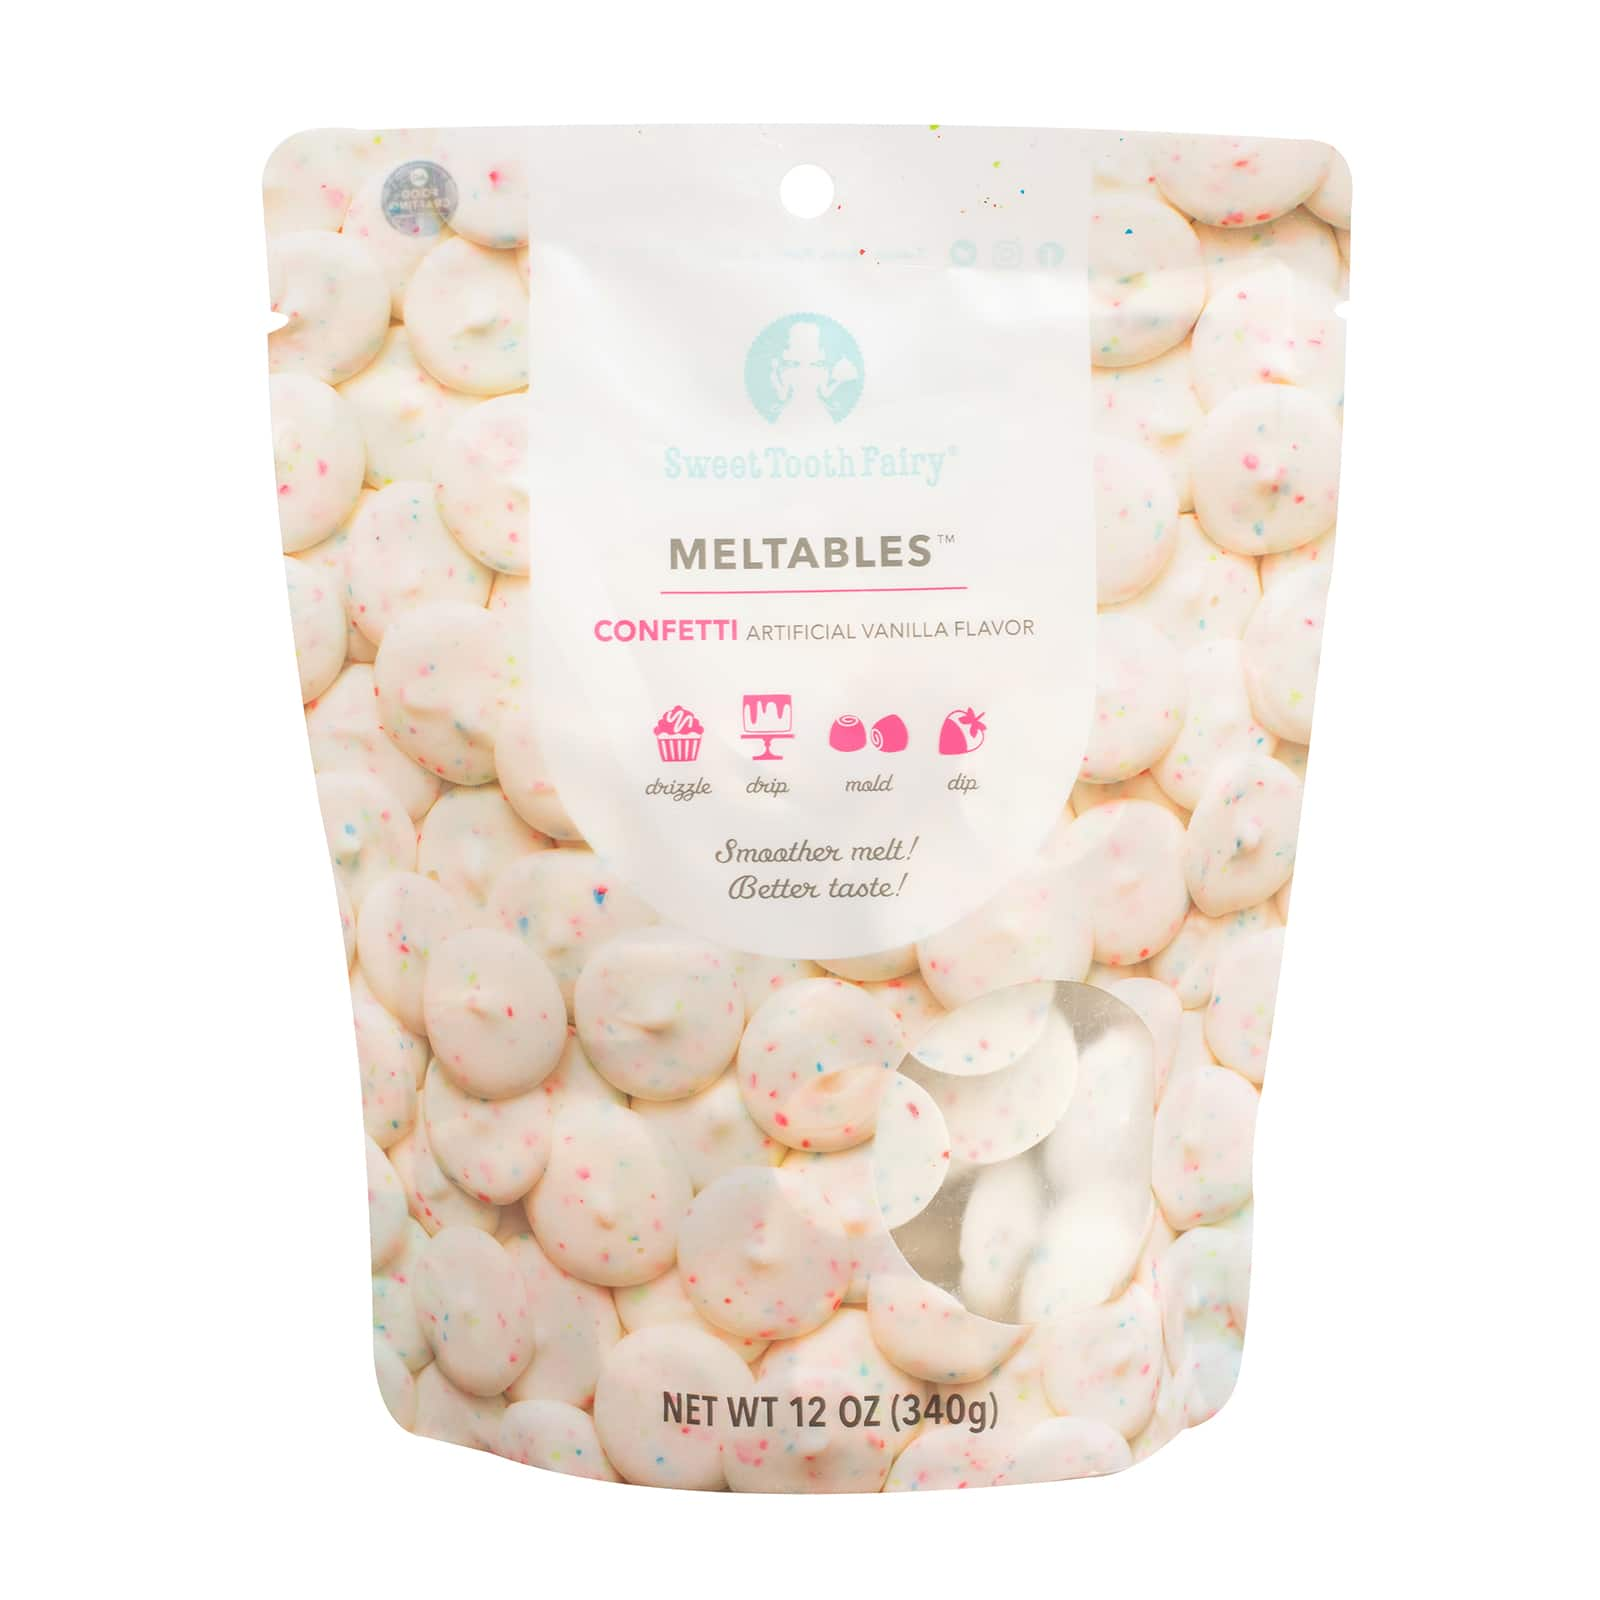 sweet tooth fairy meltables confetti